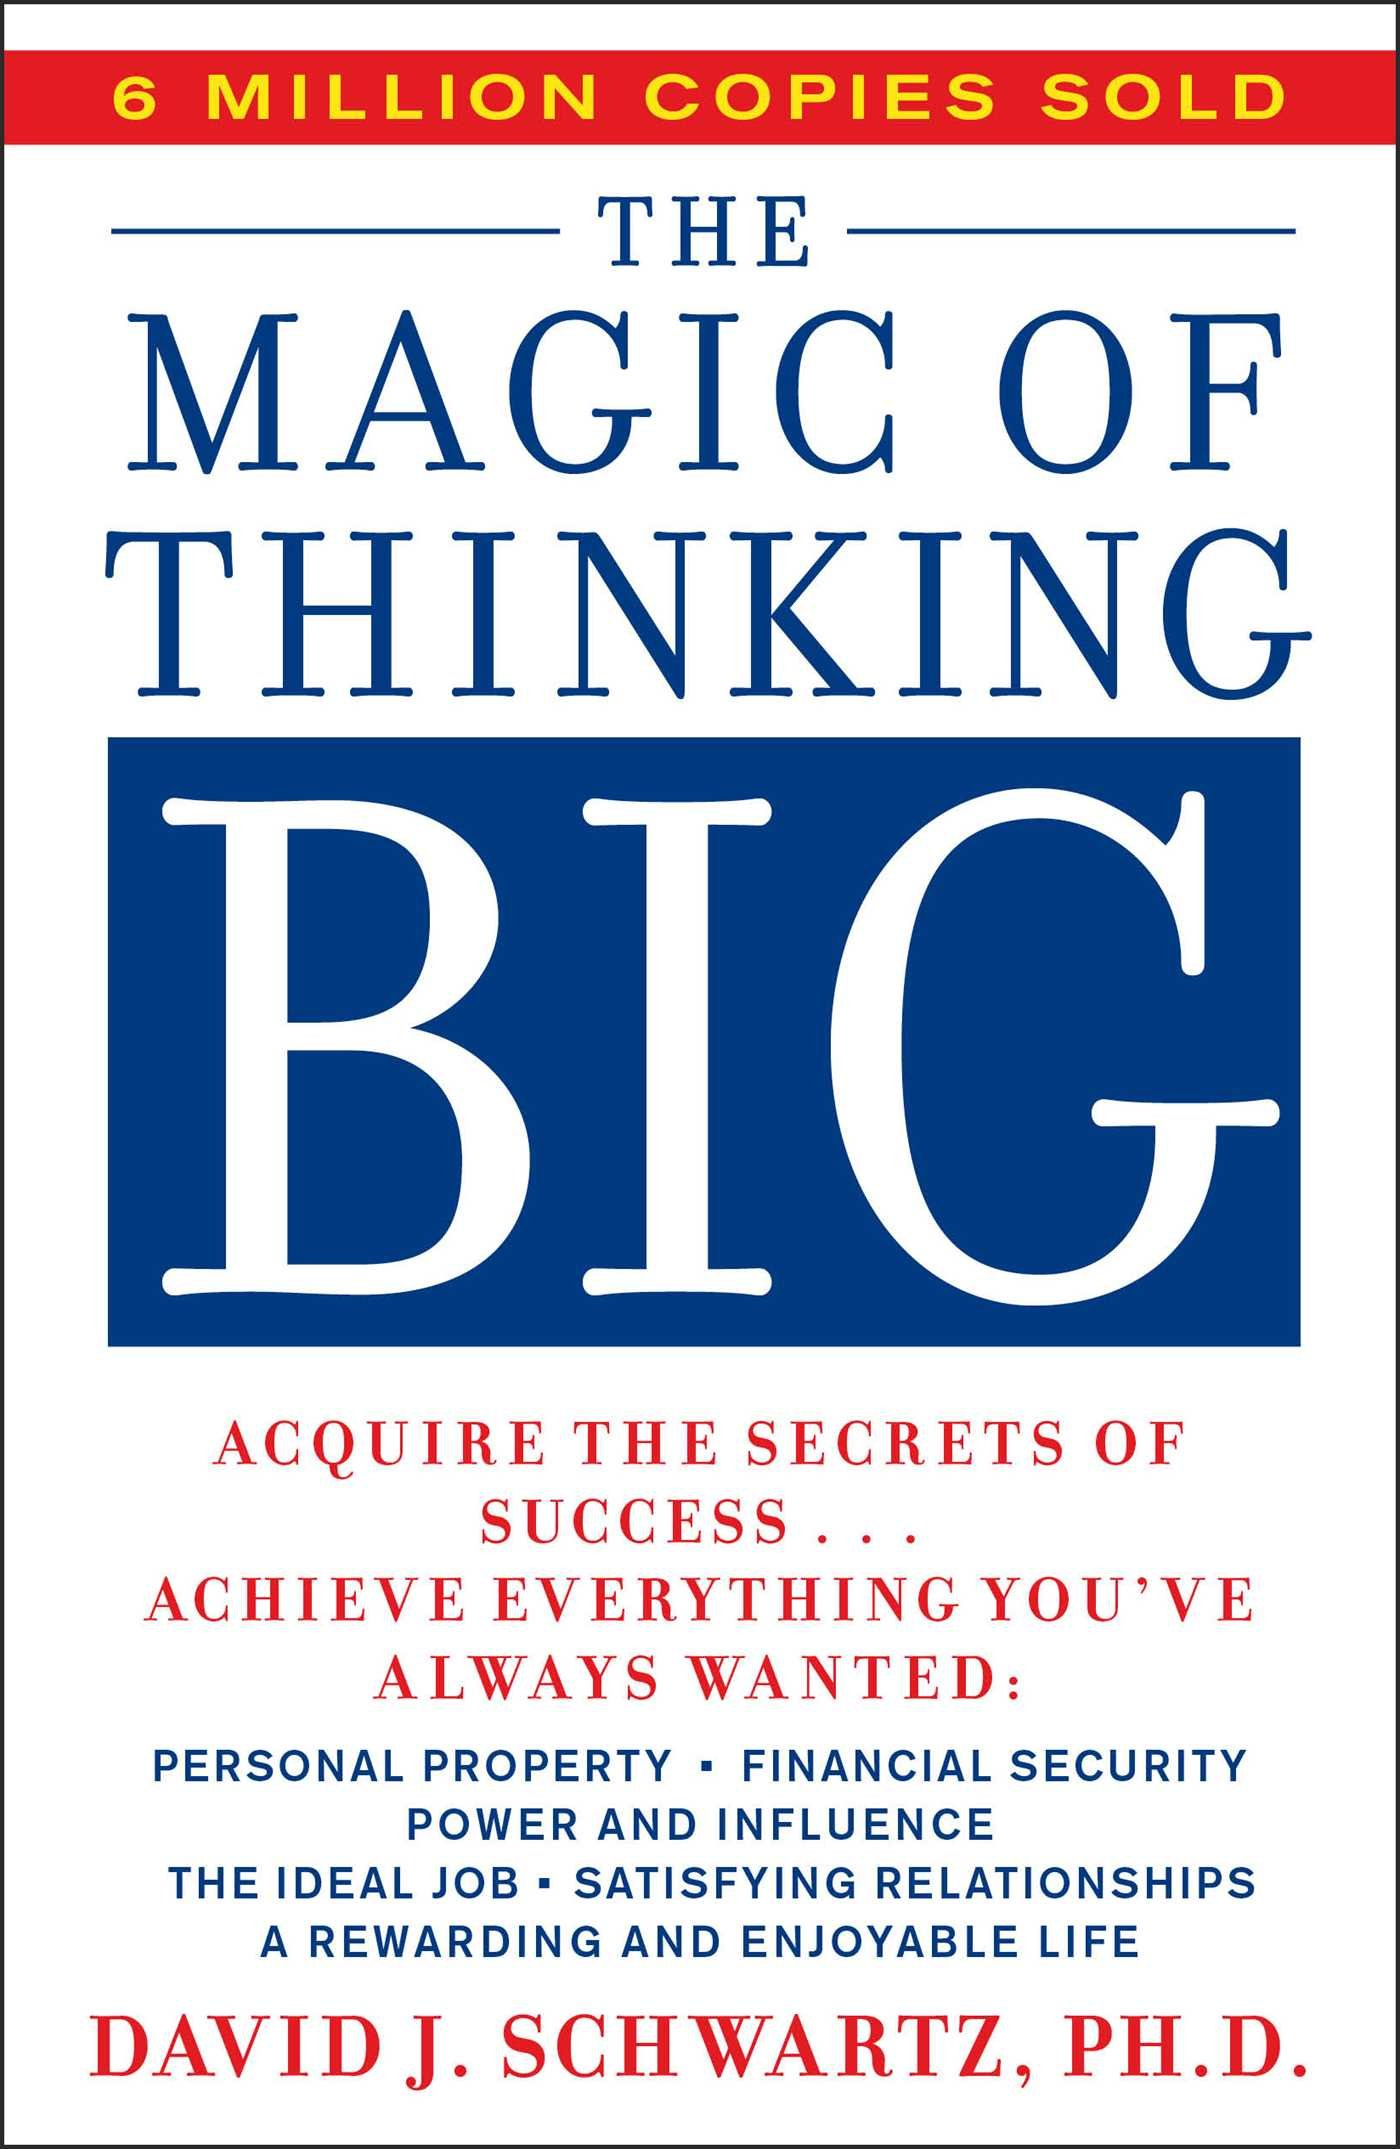 Magic of Thinking Big- by David Schwartz